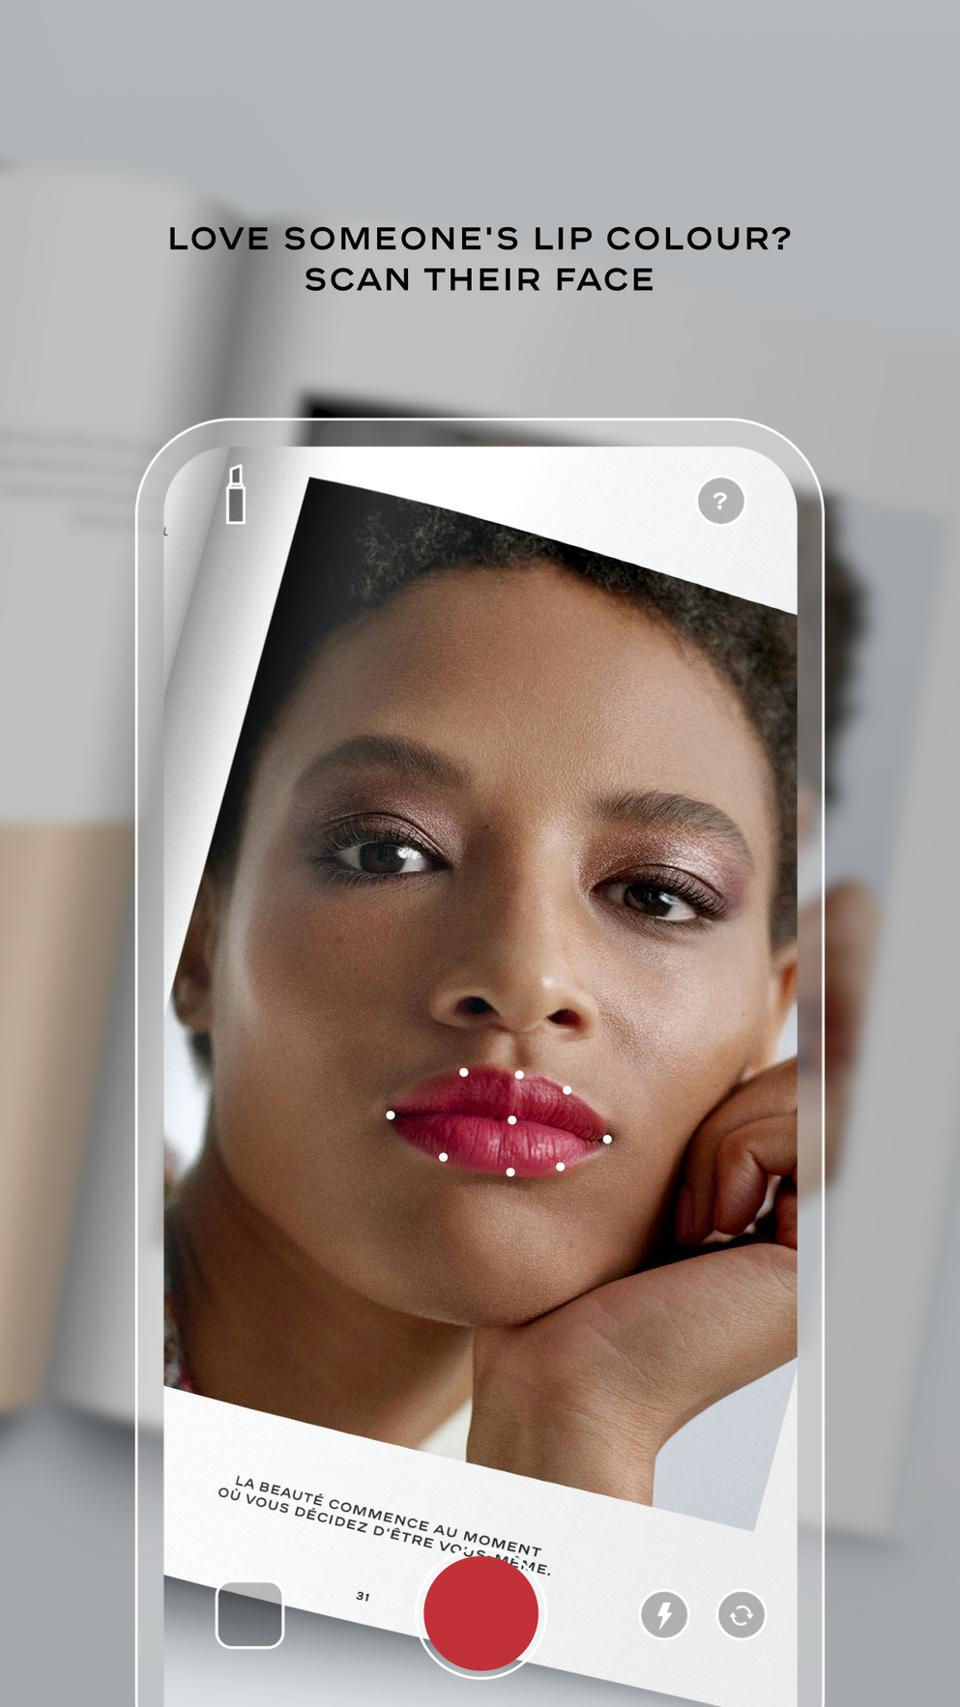 The Chanel Lipscanner app